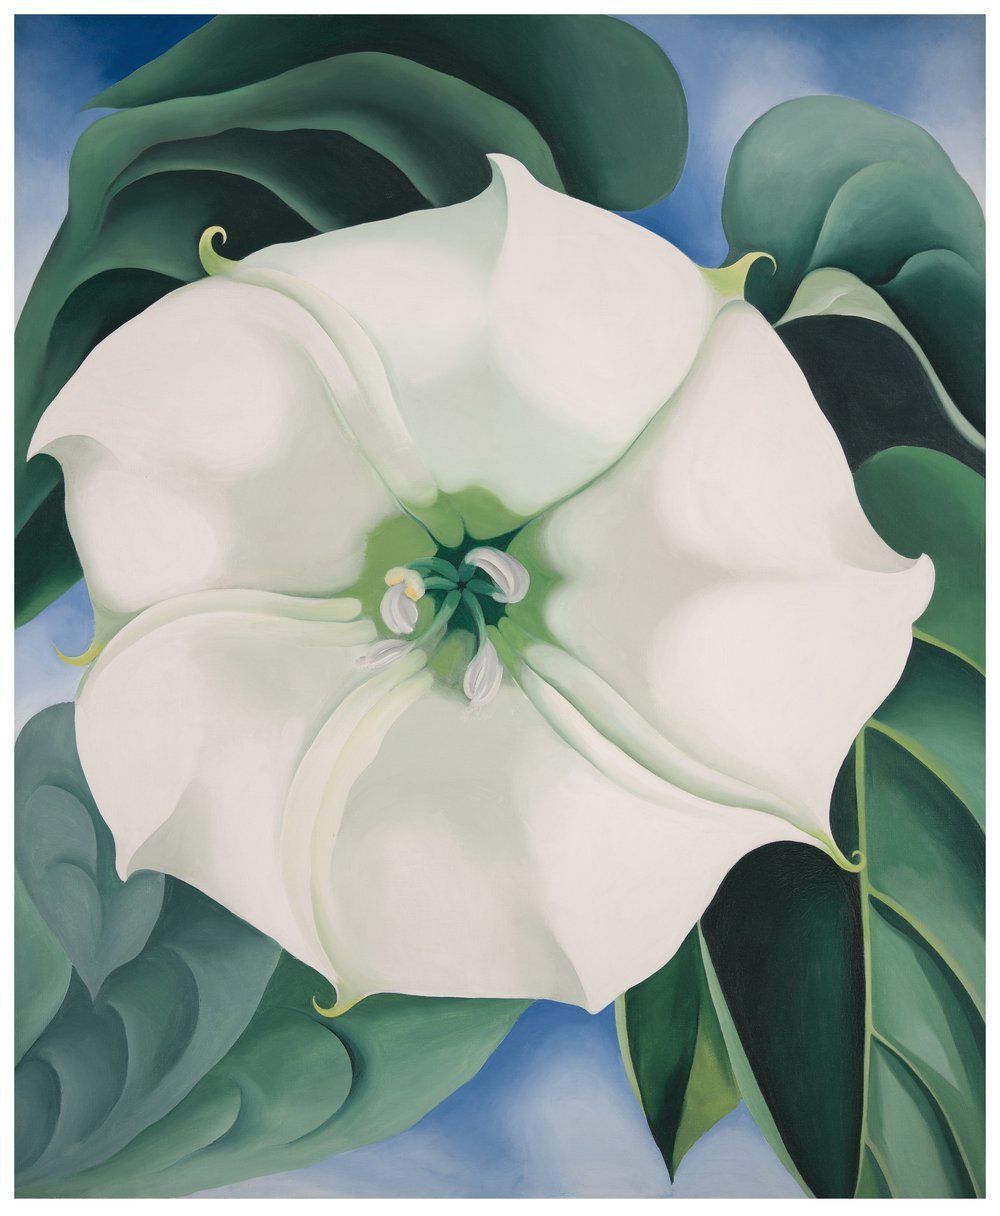 Georgia O'Keeffe, Jimson Weed/White Flower No. 1, 1932 Oil on canvas, 121.9 × 101.6 cm Crystal Bridges Museum of American Art, Bentonville, Arkansas © Georgia O'Keeffe Museum Photography by Edward C. Robison III